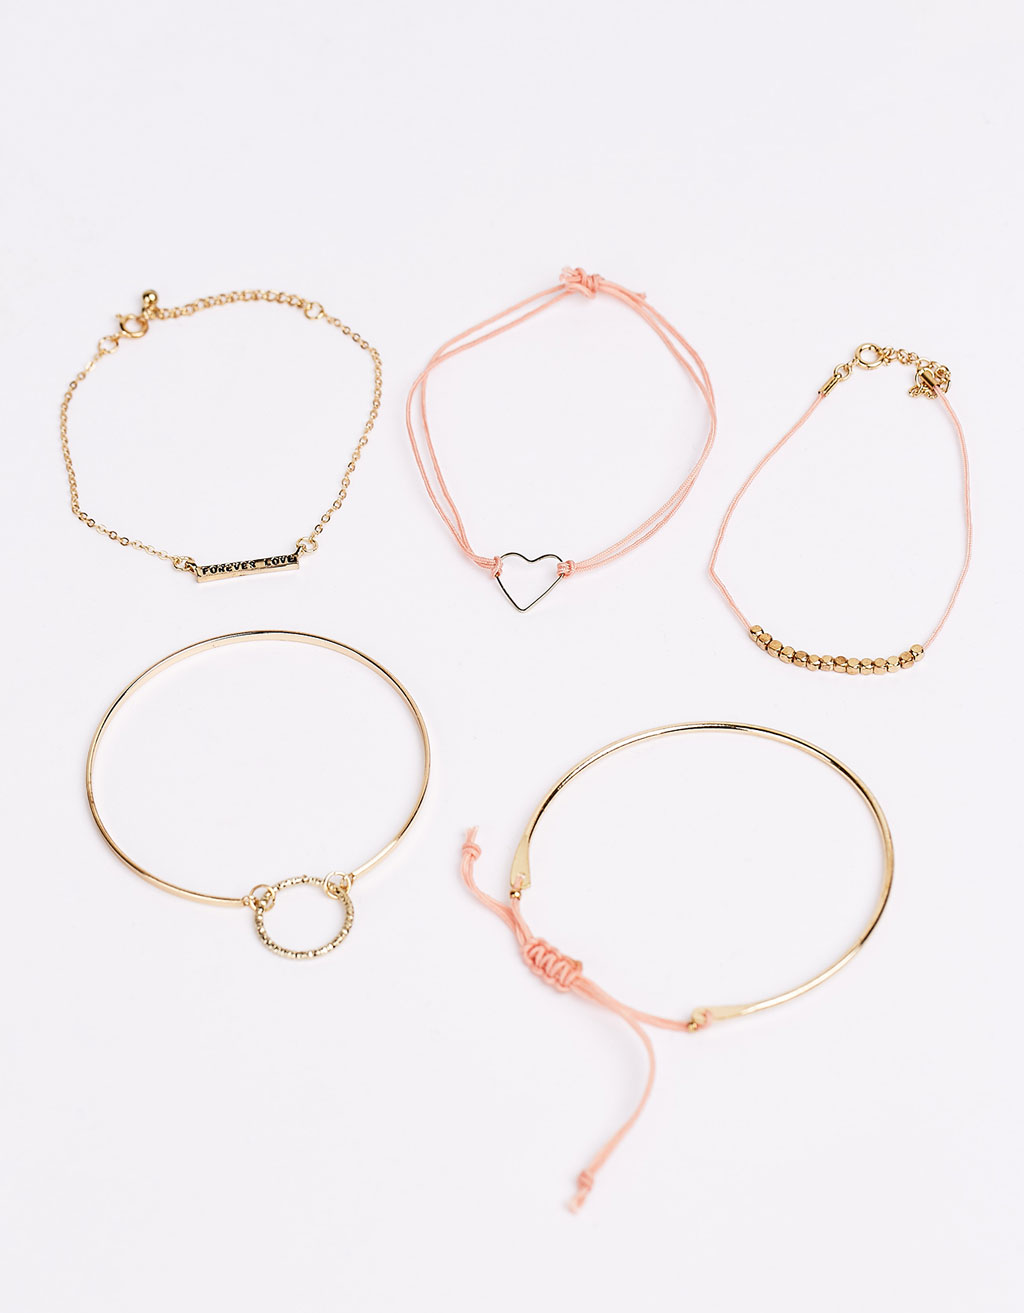 Set of 5 friendship bracelets